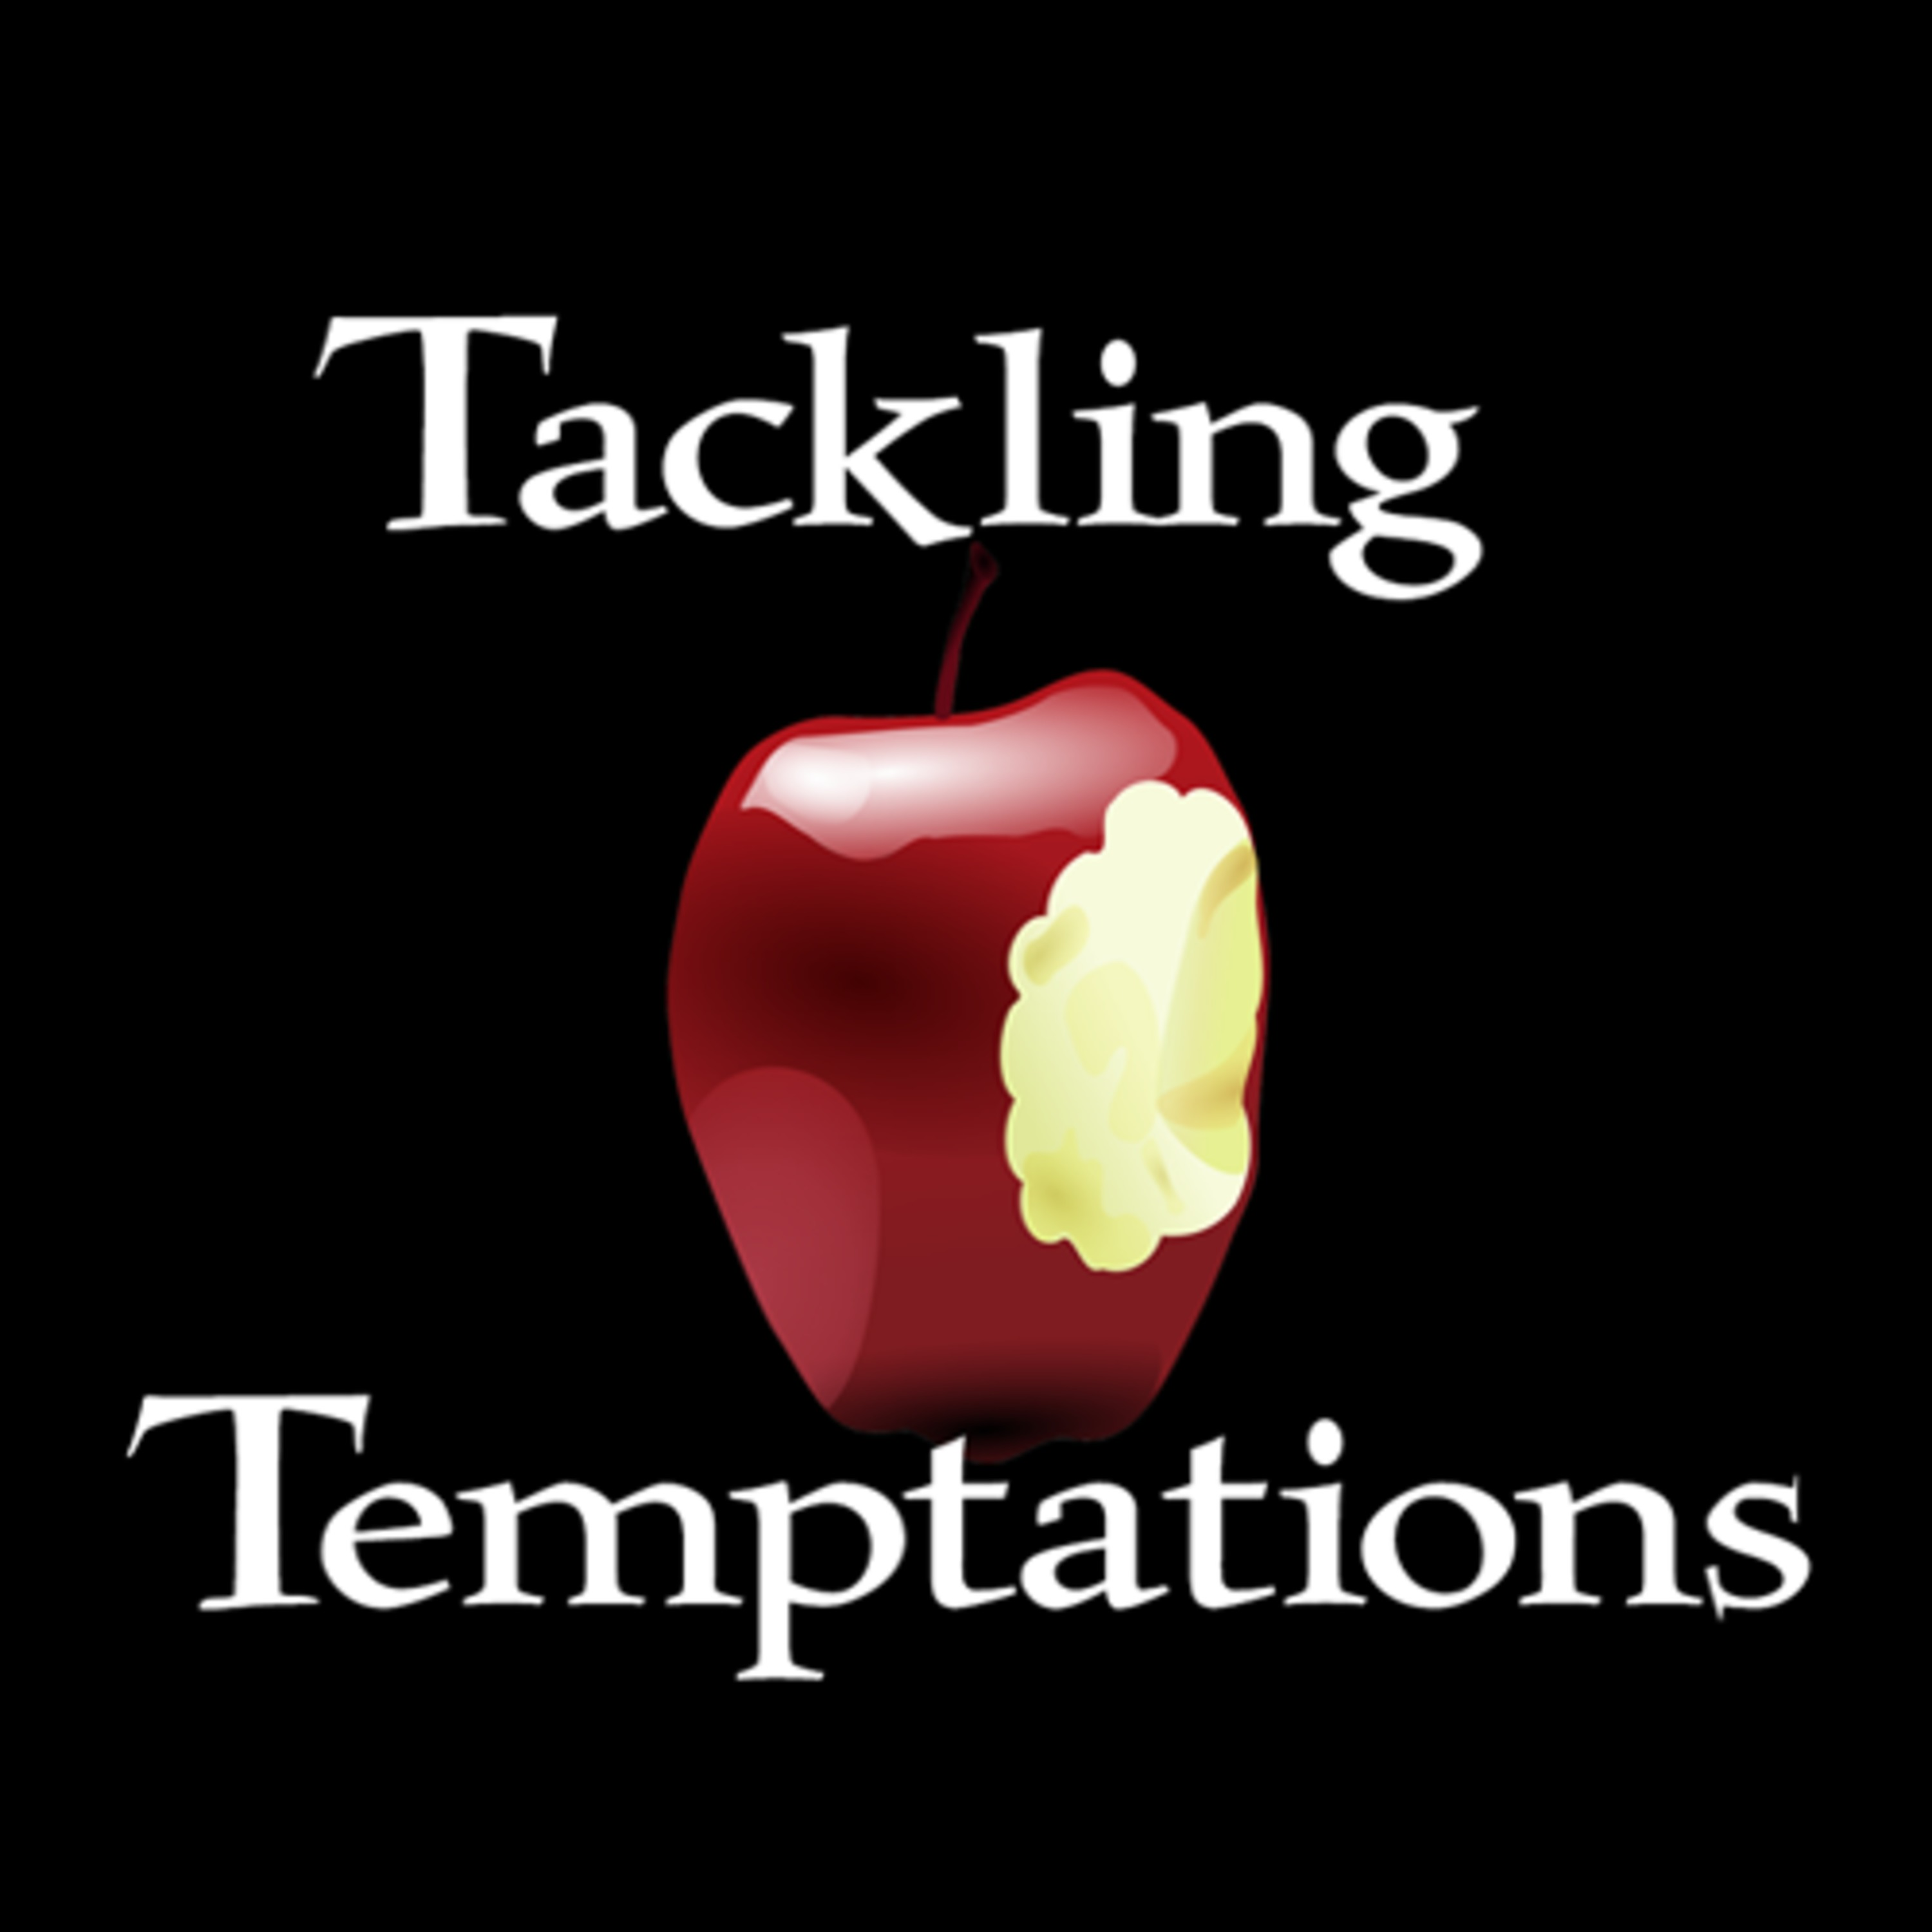 Tackling Temptations